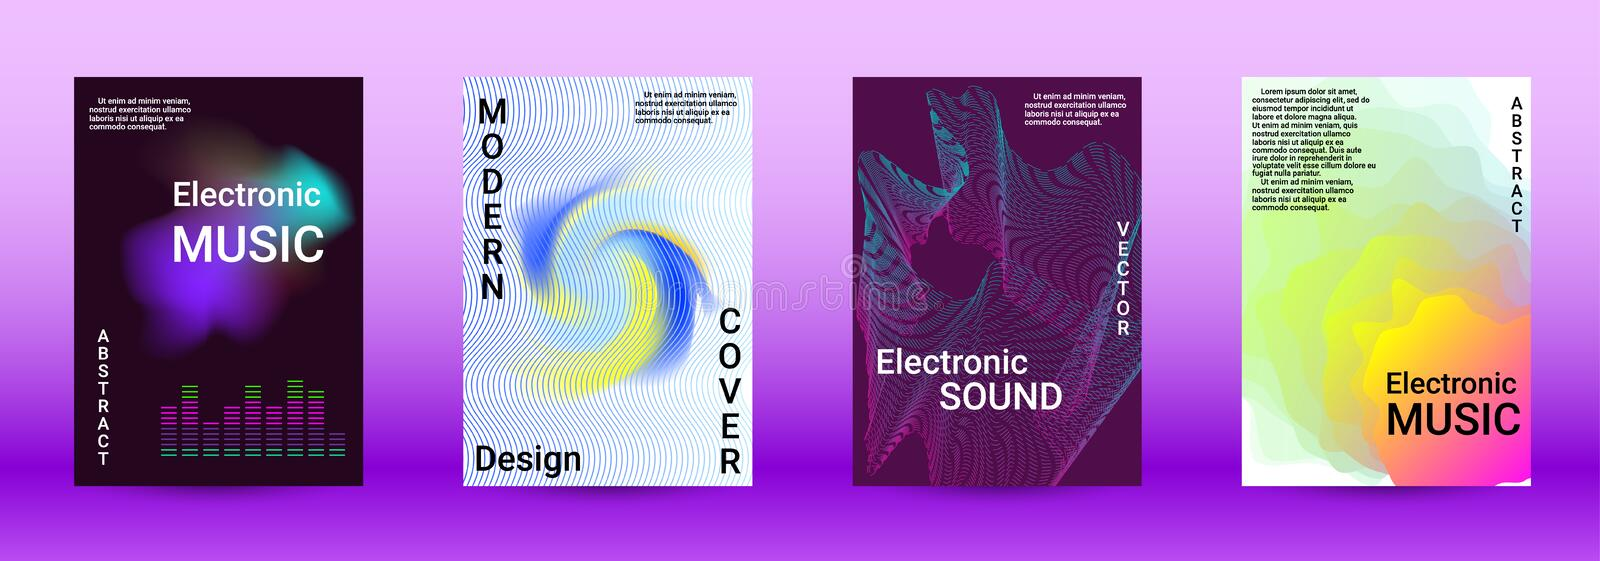 Sound flyer stock photography